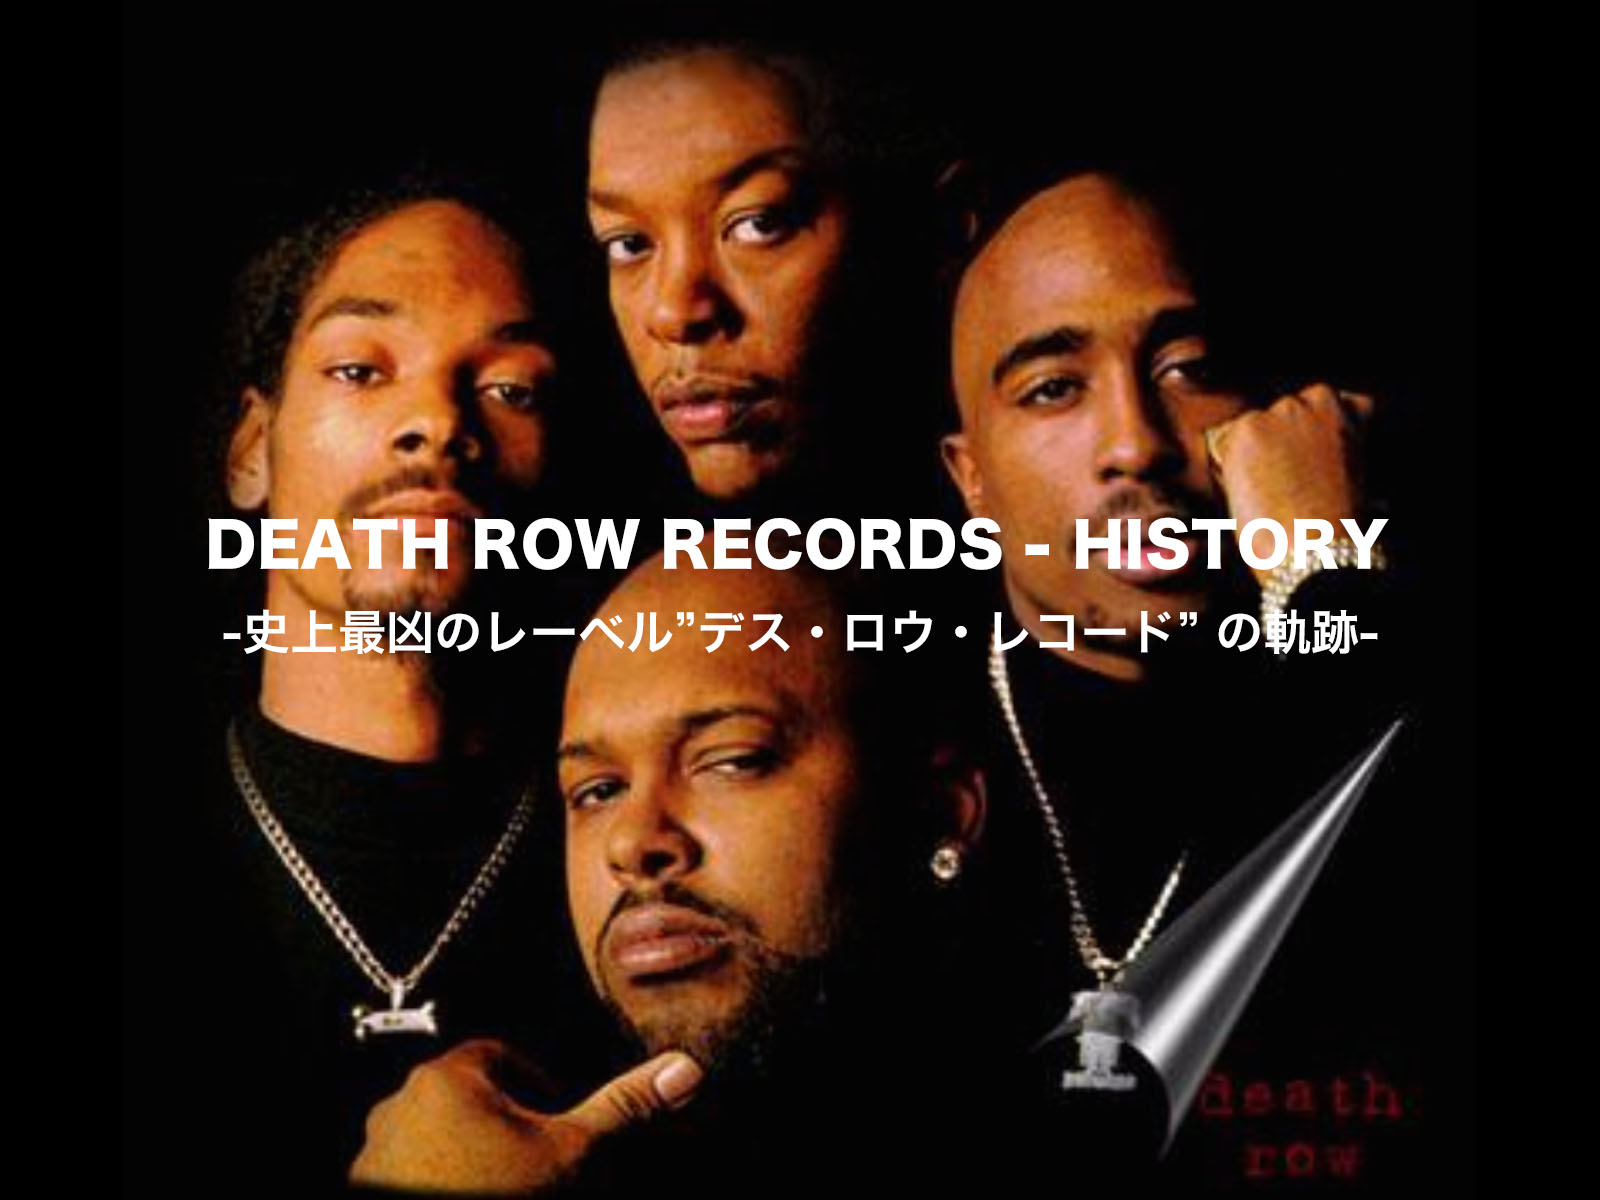 DEATH ROW RECORDS – HISTORY